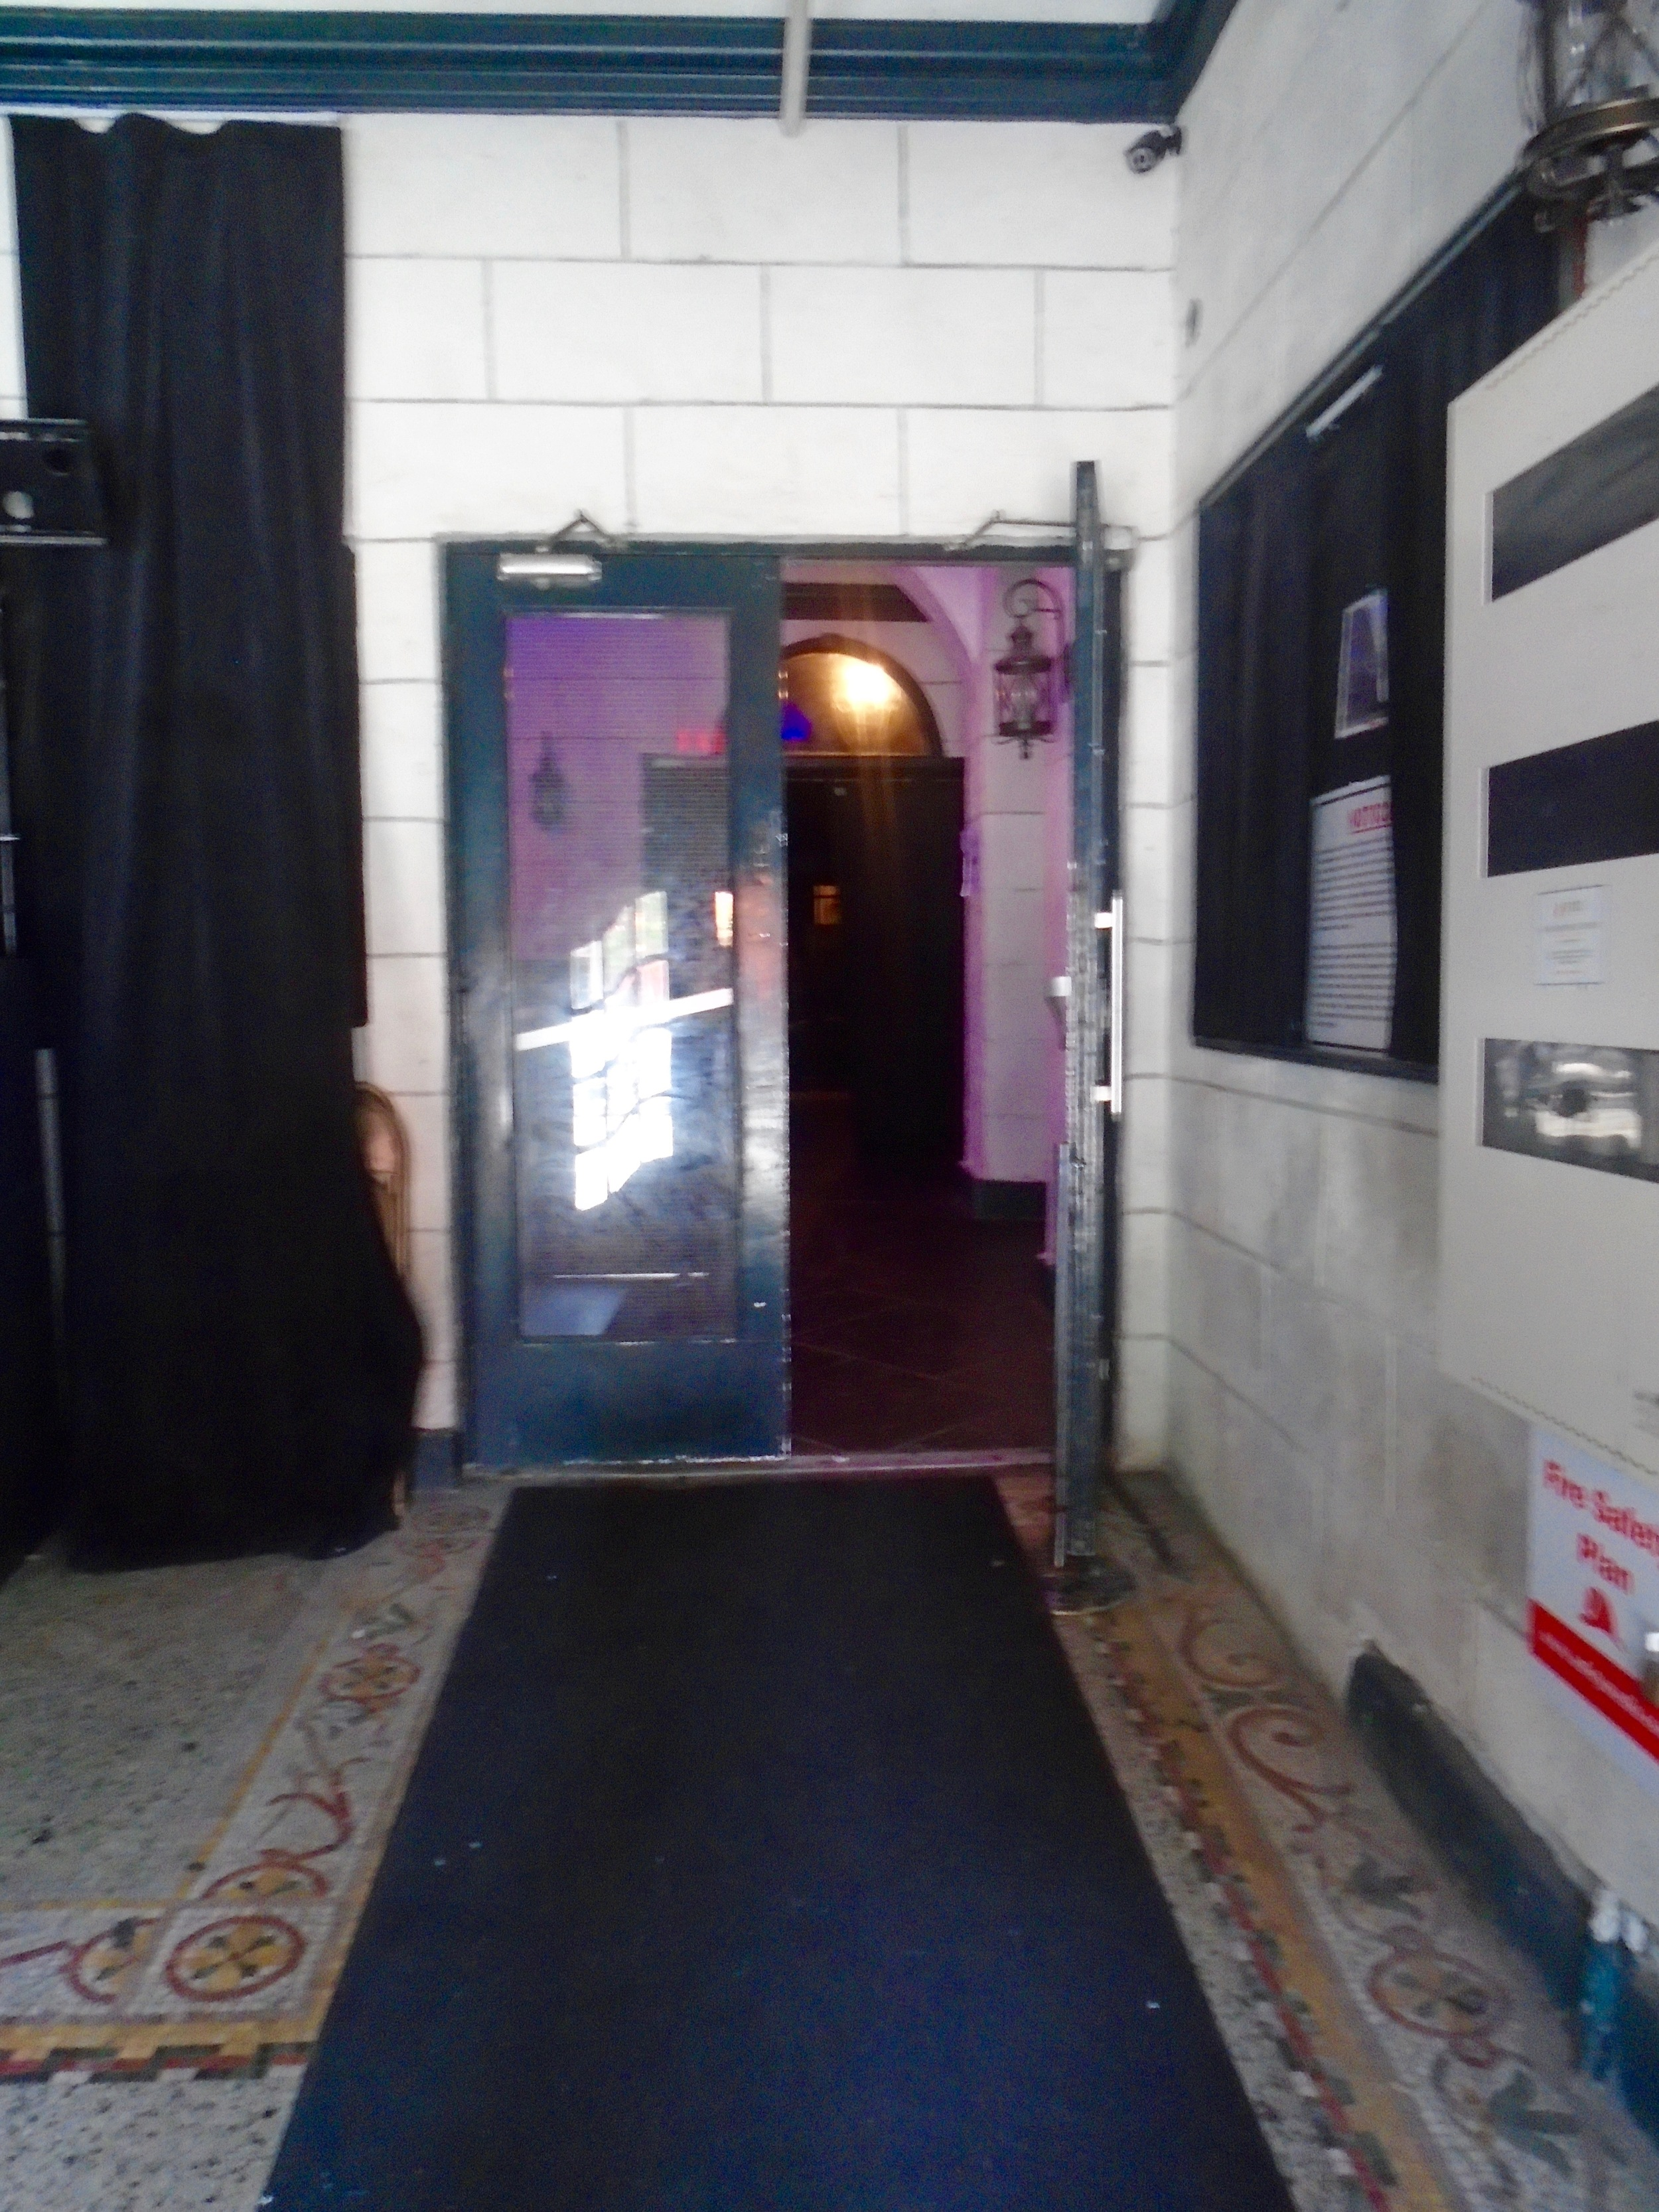 Picture of double doors upon entering venue